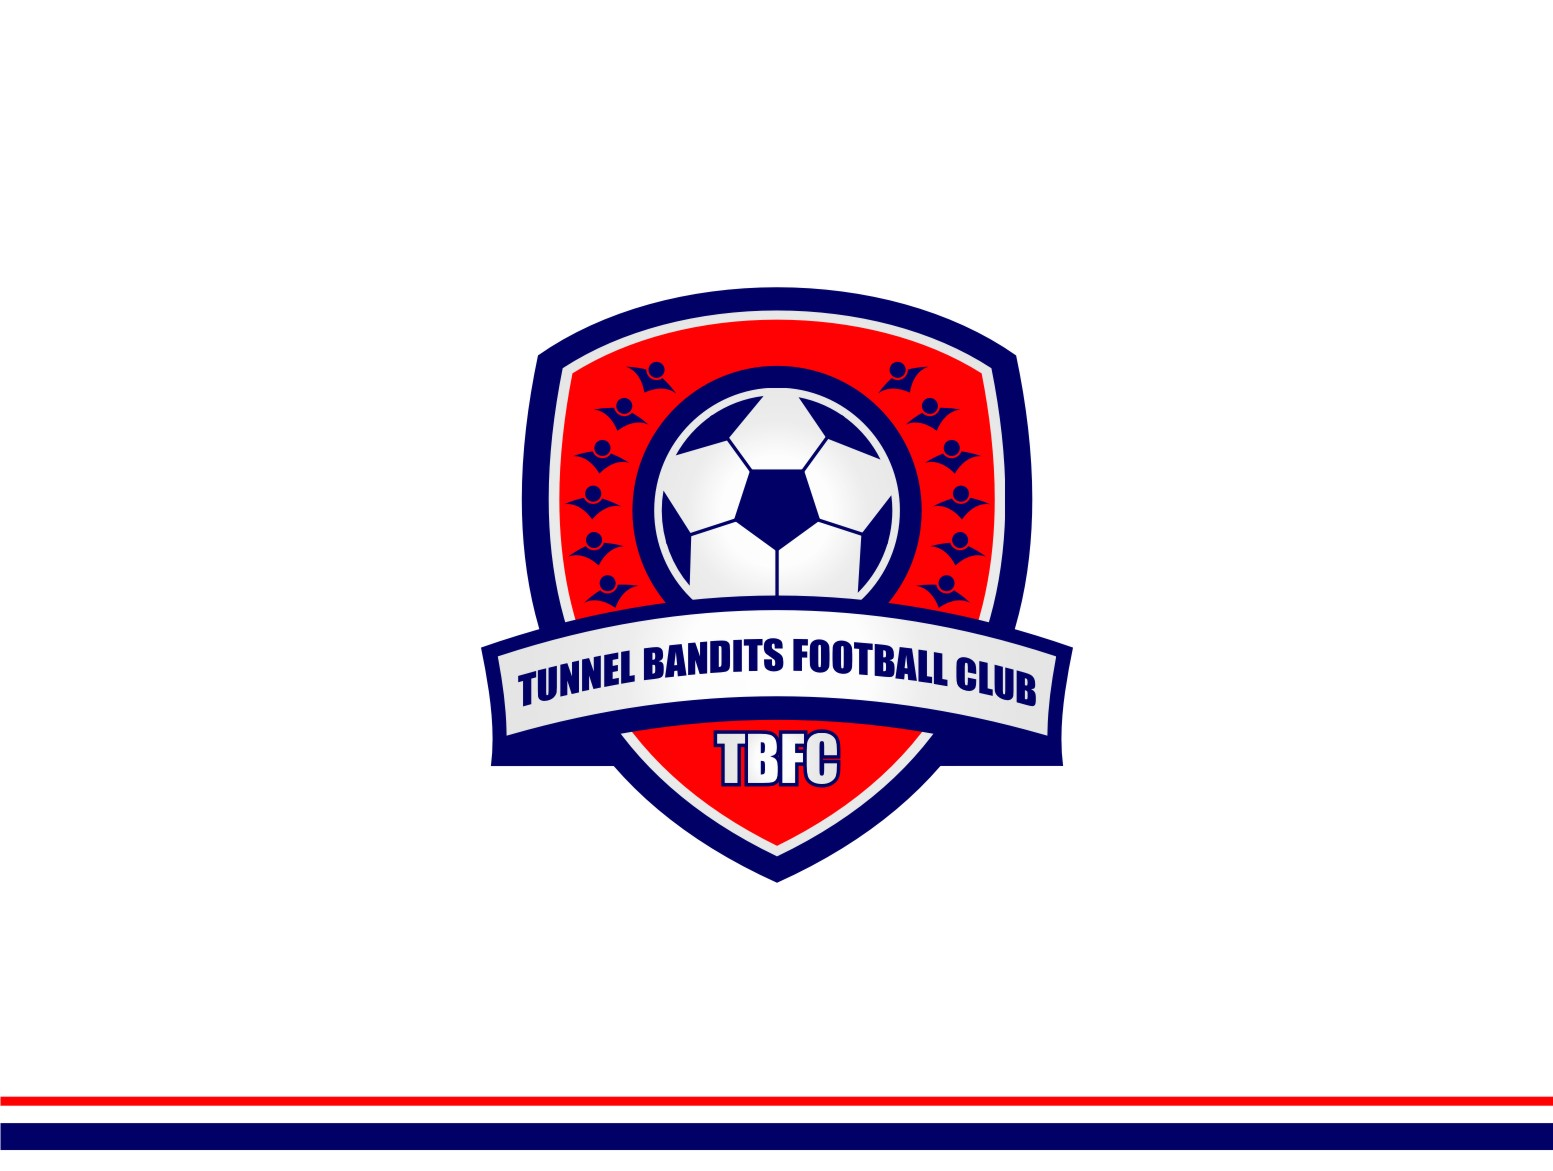 Logo Design by untung - Entry No. 3 in the Logo Design Contest Tunnel Bandits Football Club (TBFC) Logo Design.